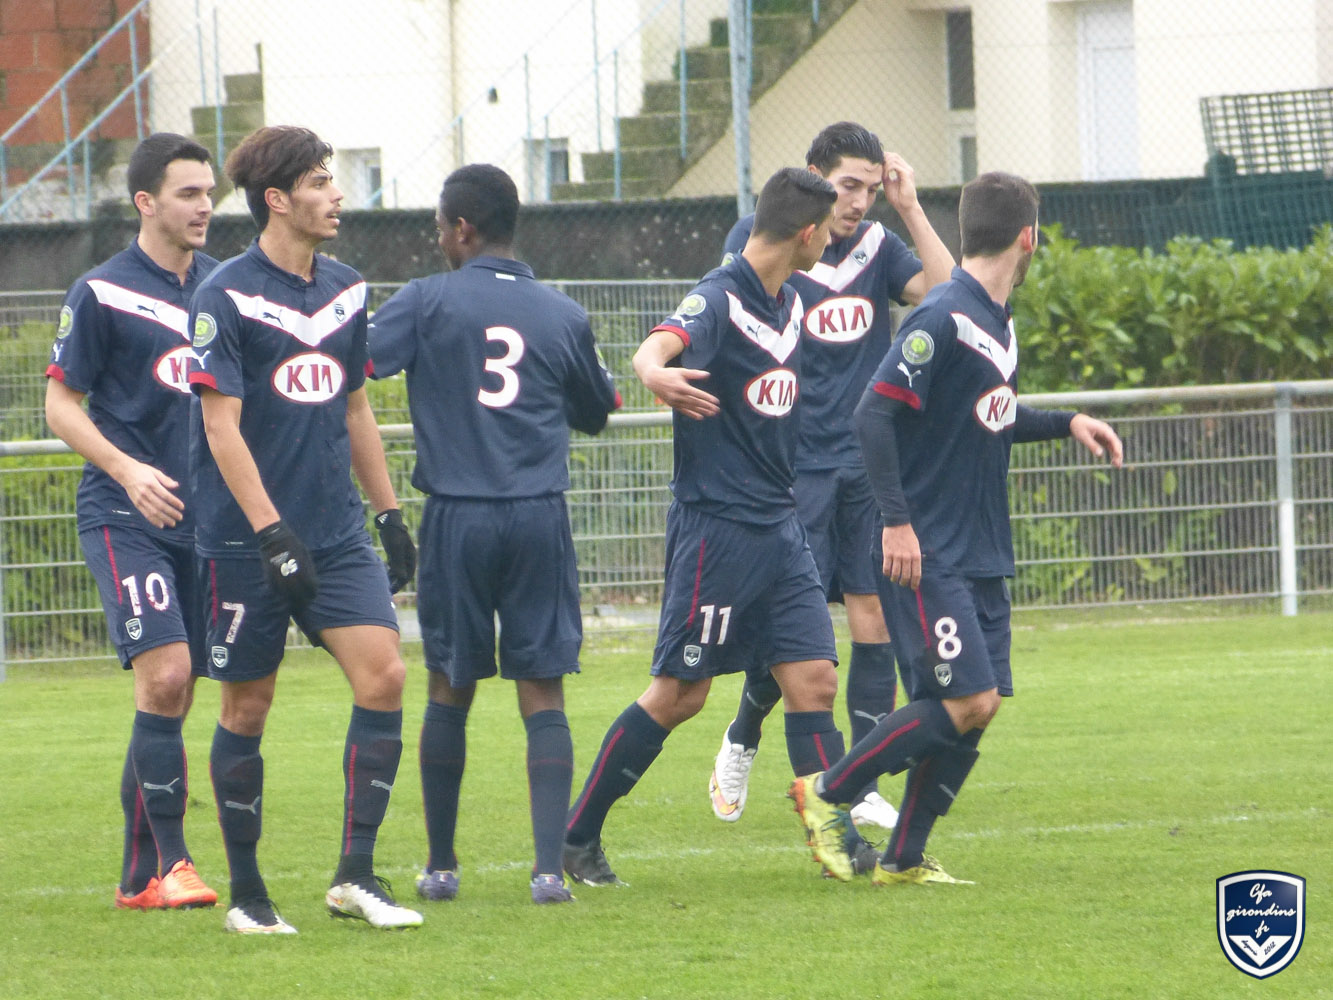 Cfa Girondins : [J15] Grosse victoire 4-2 chez le leader ! - Formation Girondins